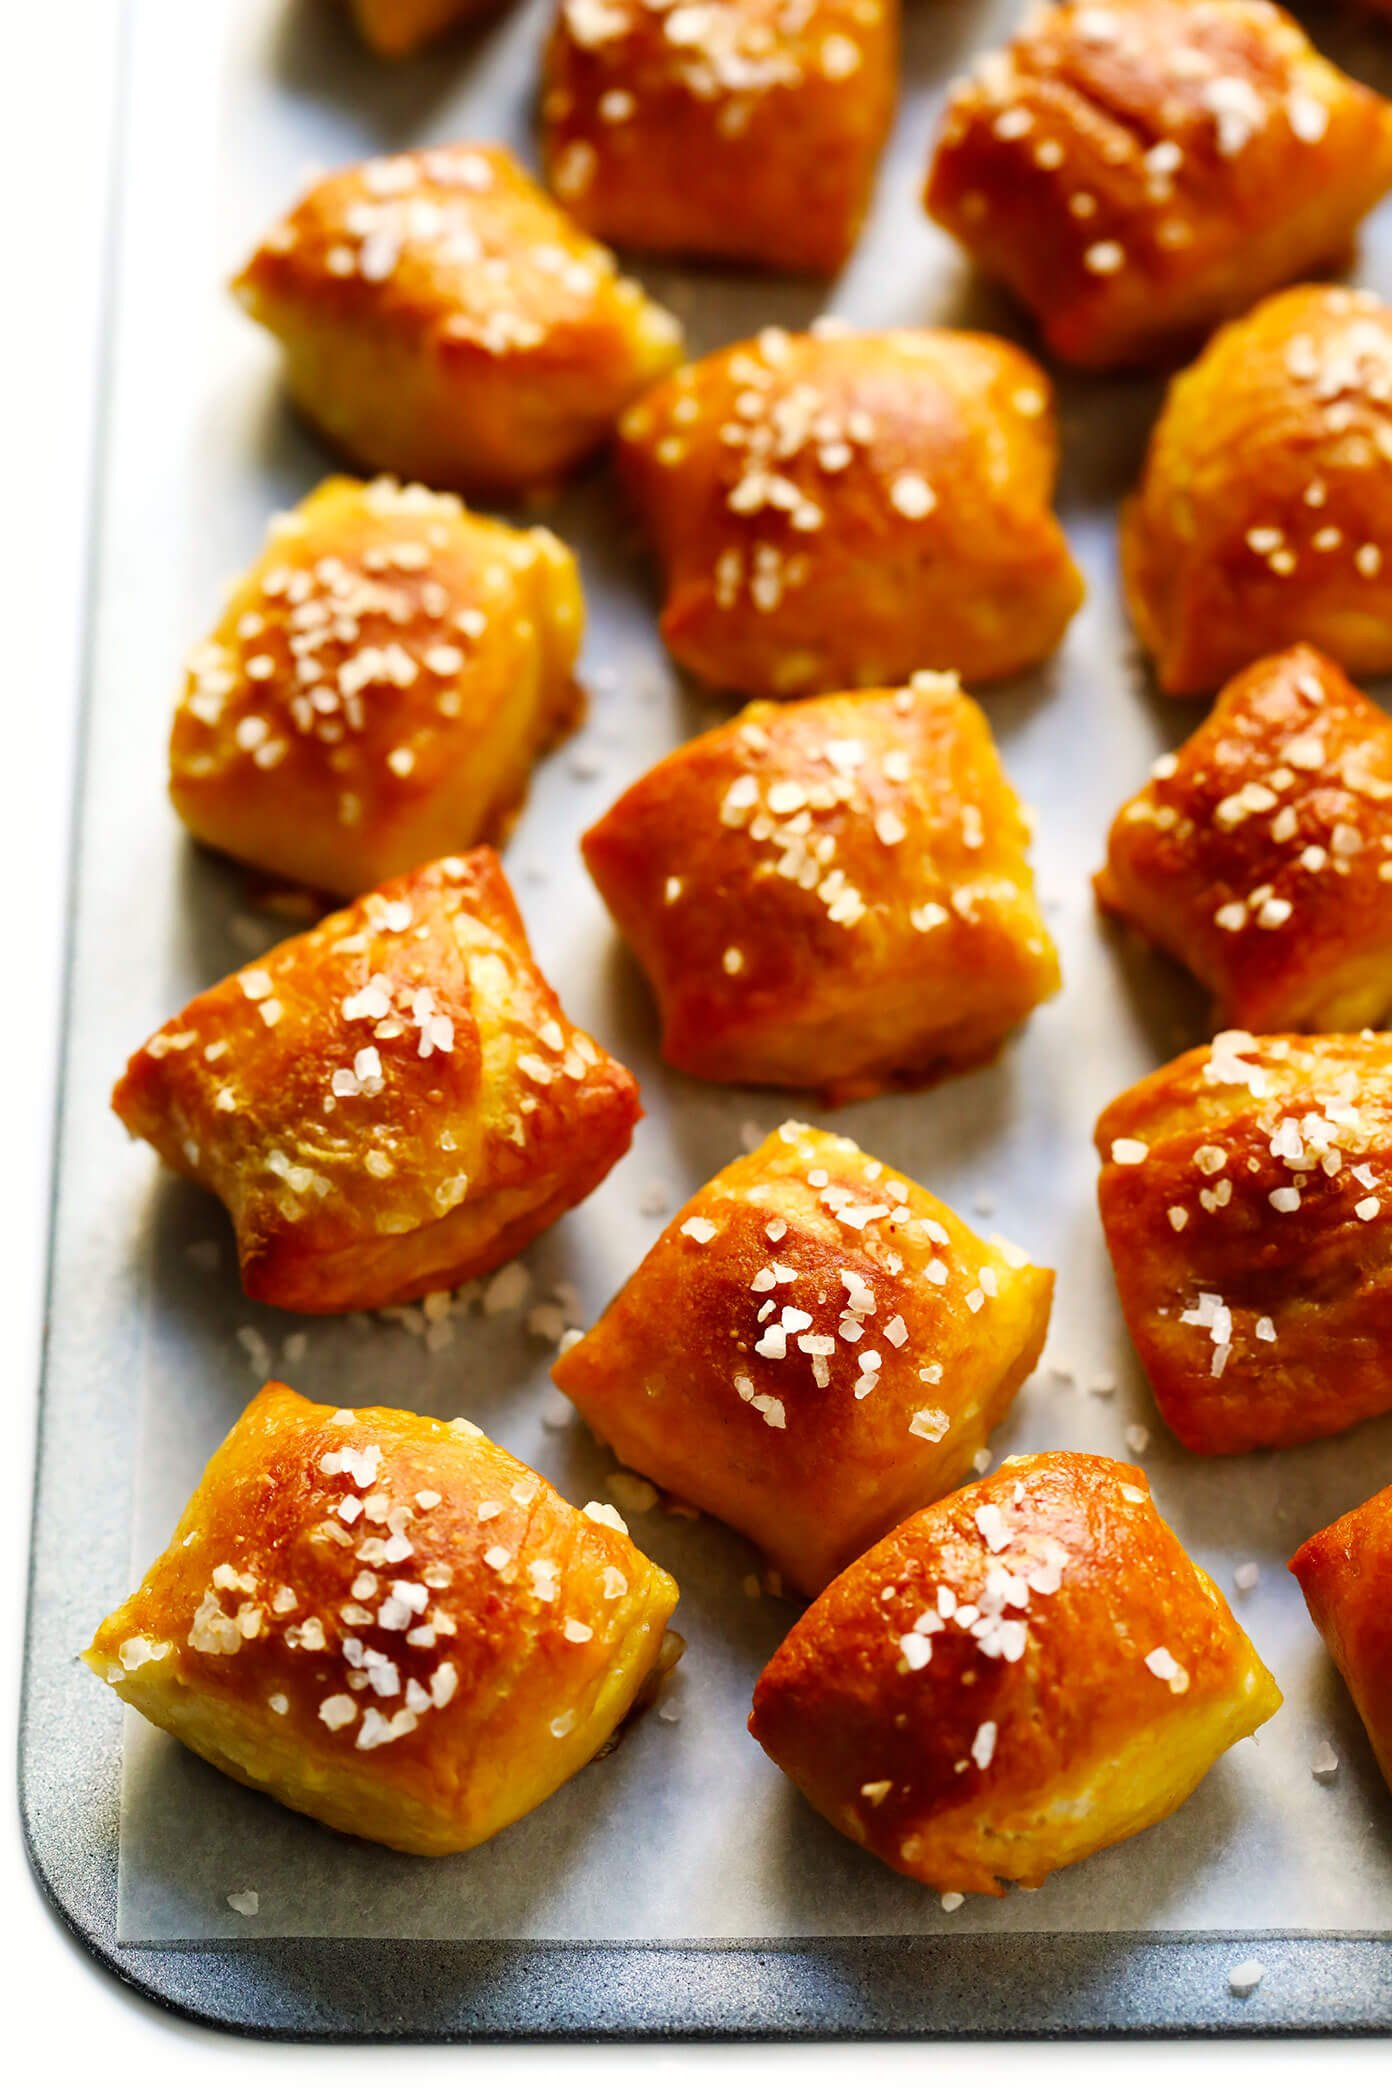 Homemade Pretzel Bites Recipe